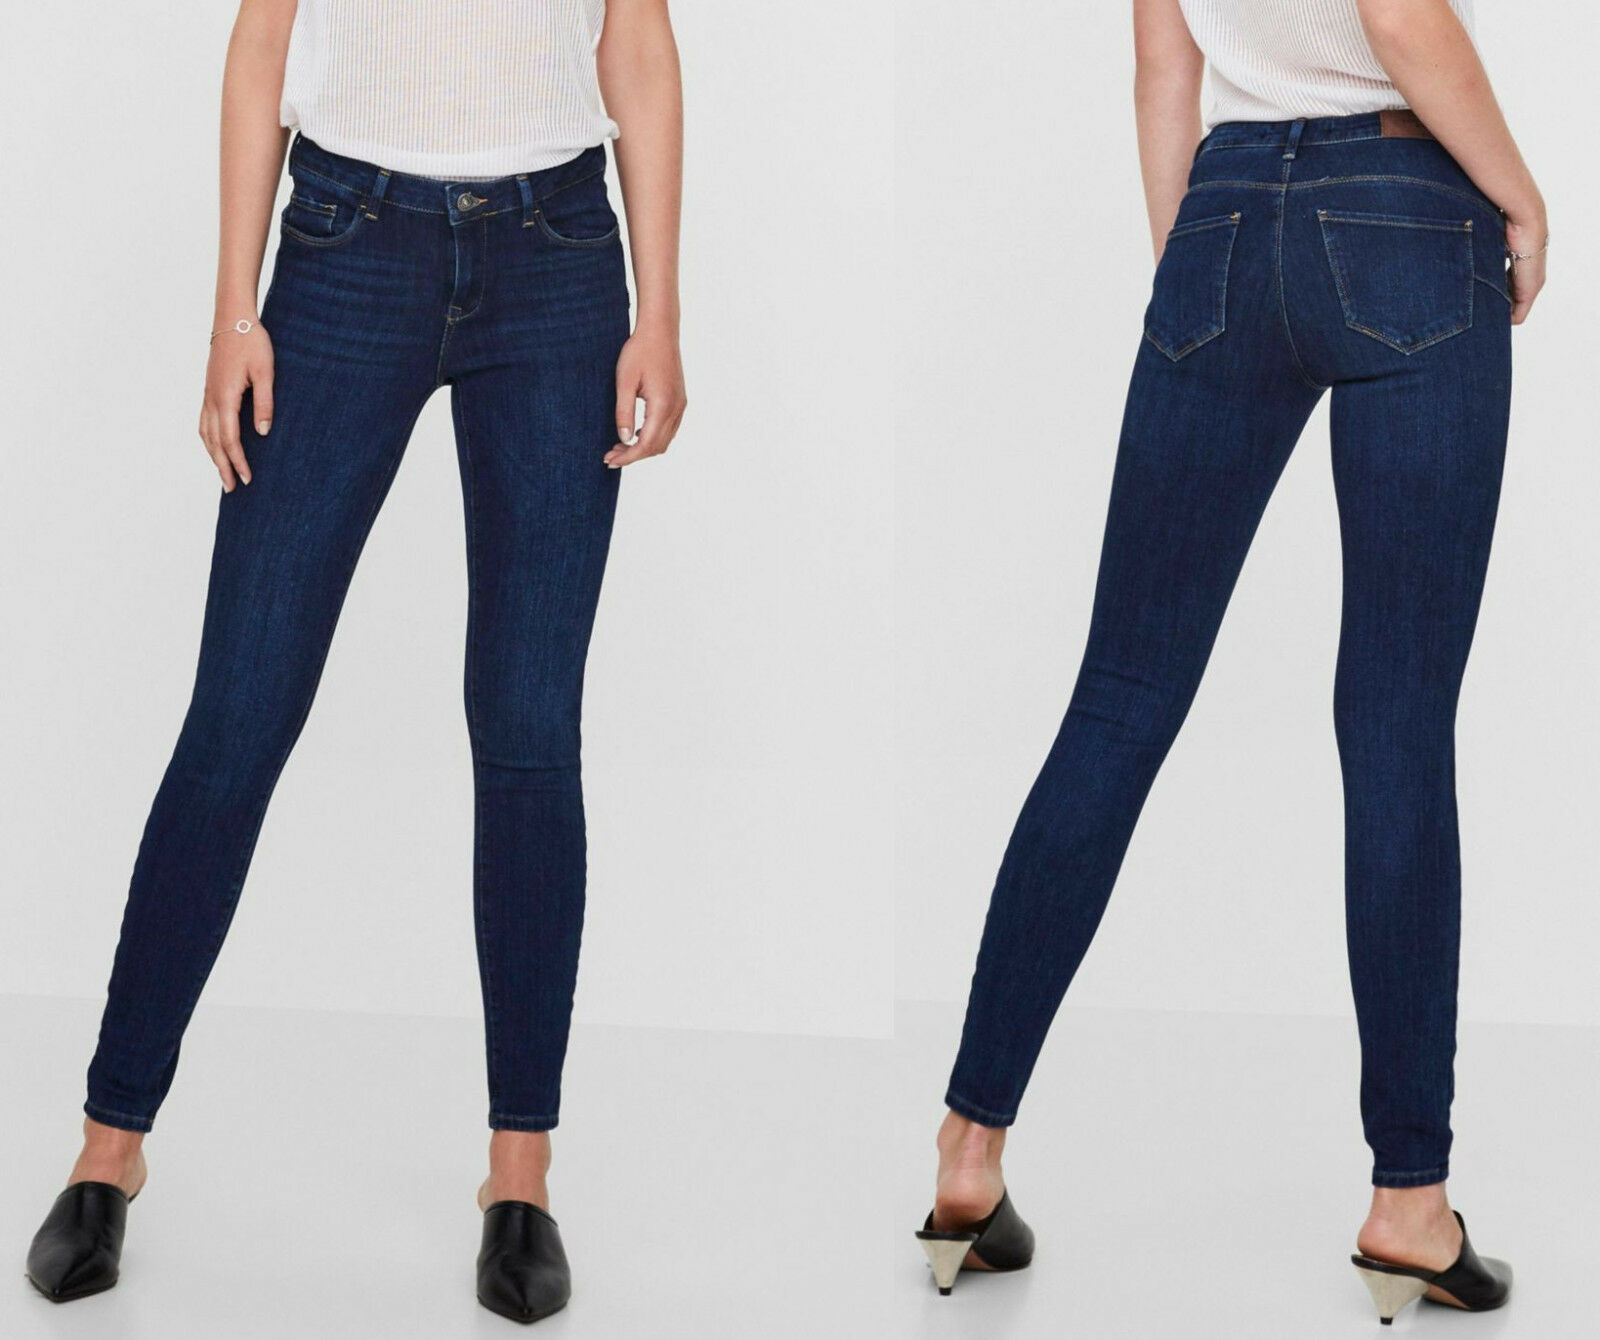 Vero Moda Stretch-Jeans »ICON PUSH UP«, dark blue. NEU!!! KP 59,99 €